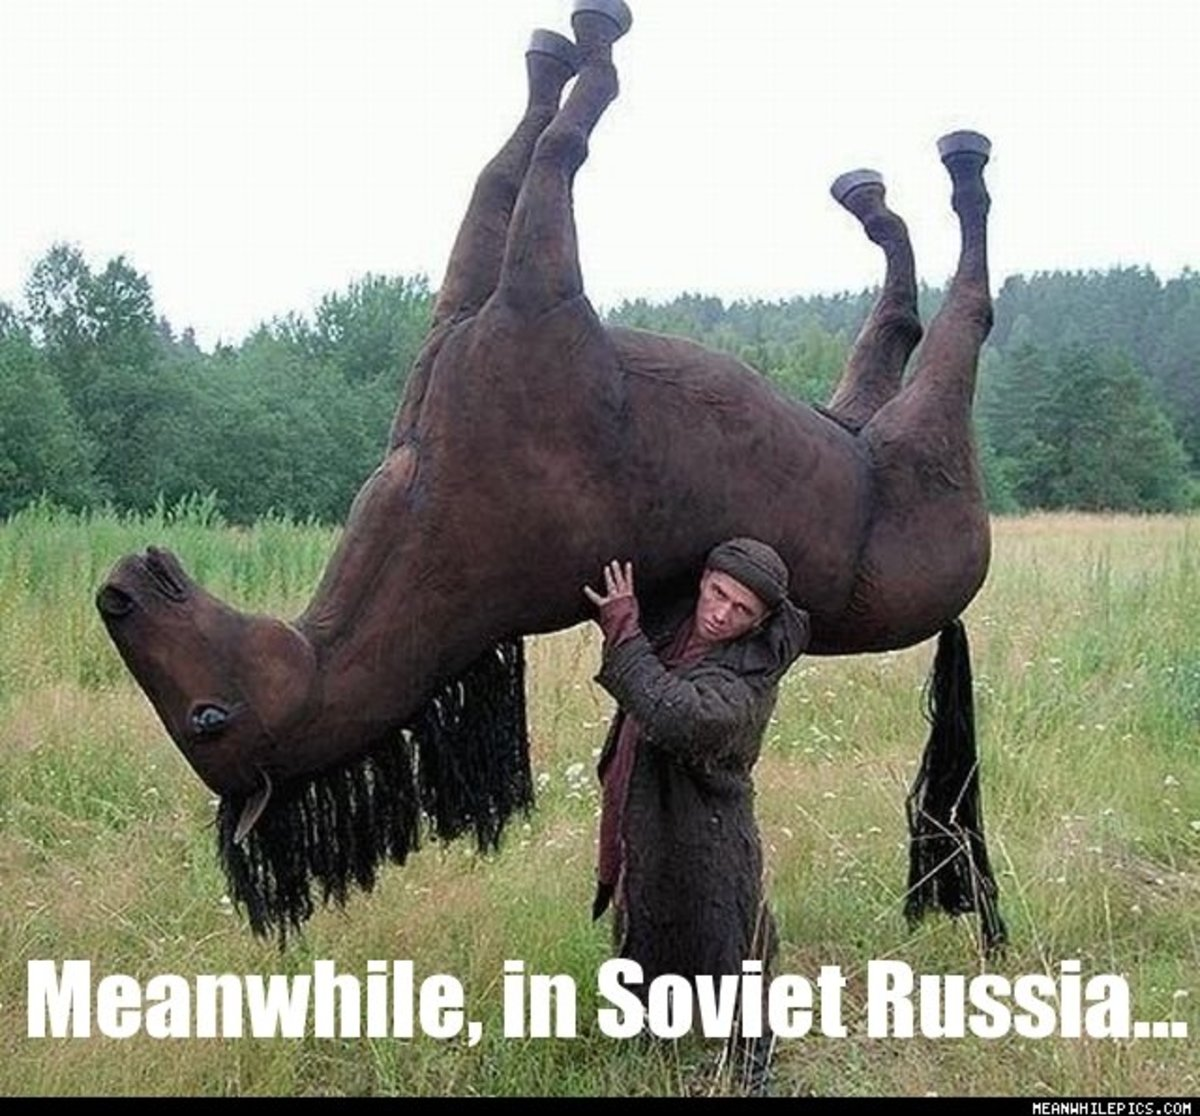 Why Are all Russians in Russia Crazy?